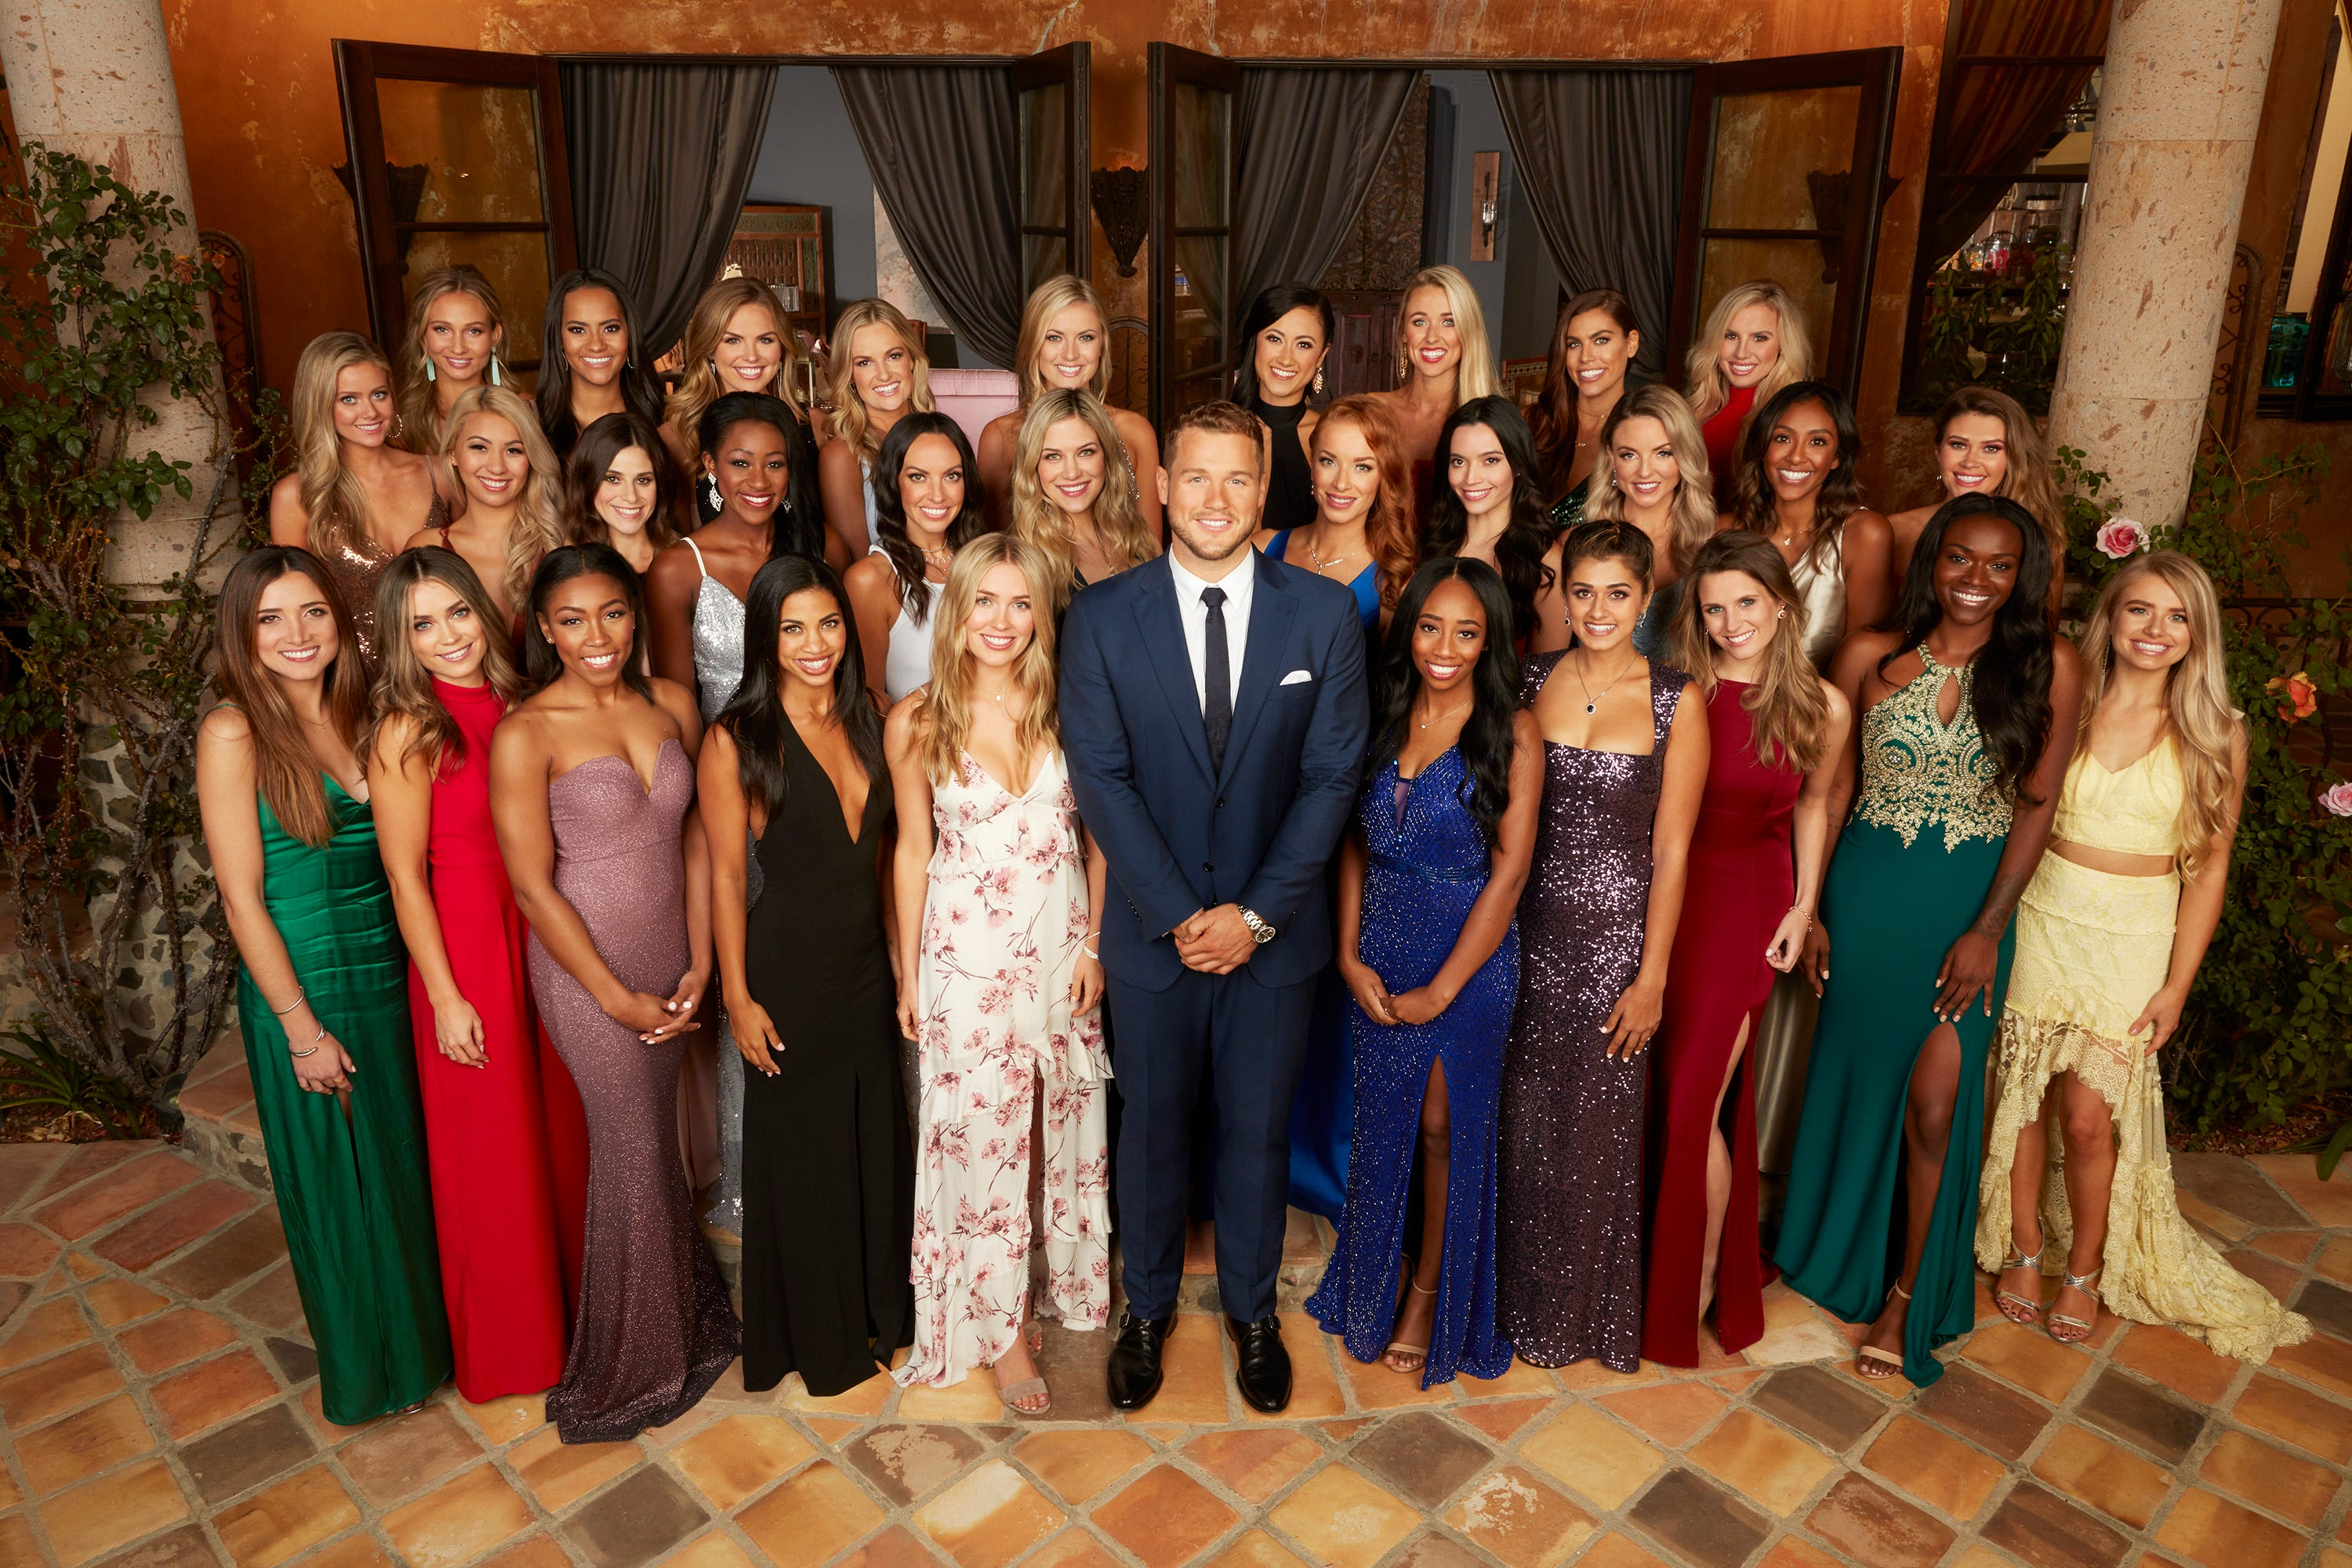 'The Bachelor:' Meet the 30 ladies competing for Colton Underwood's heart and a rose